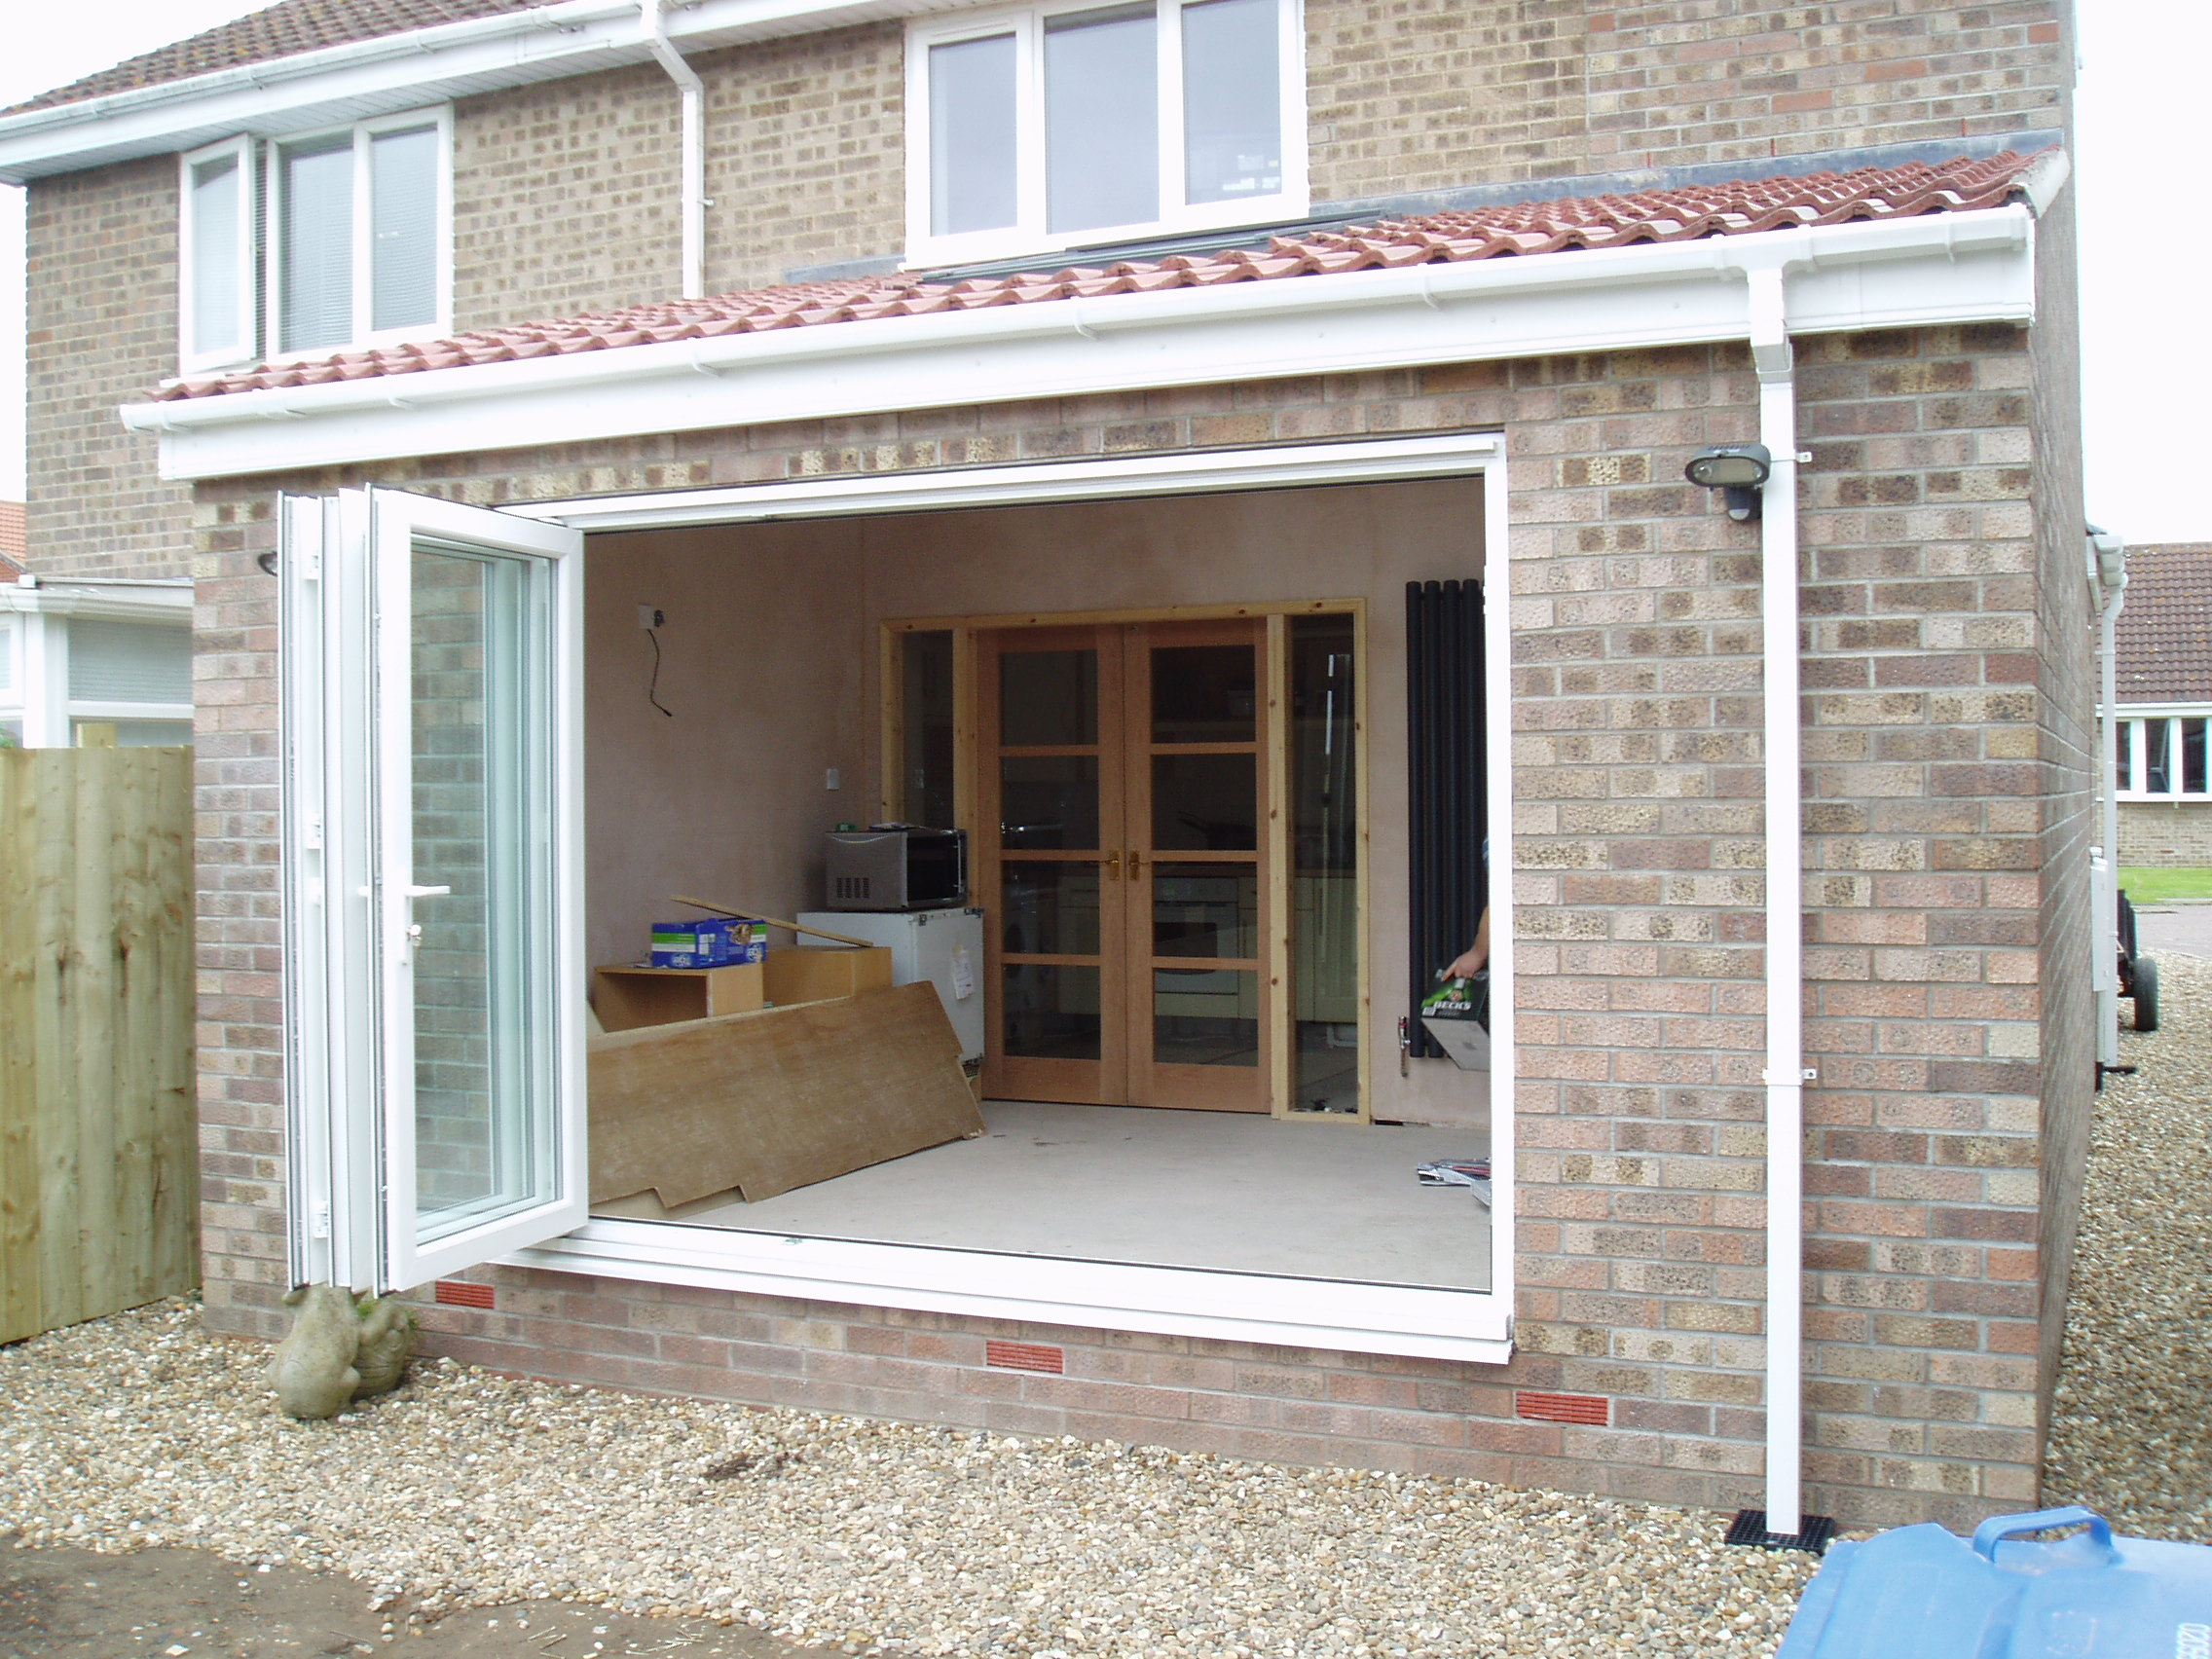 East Yorkshire Home Extension Builder. East Yorkshire Home Extension Builder   Total Improvements Limited